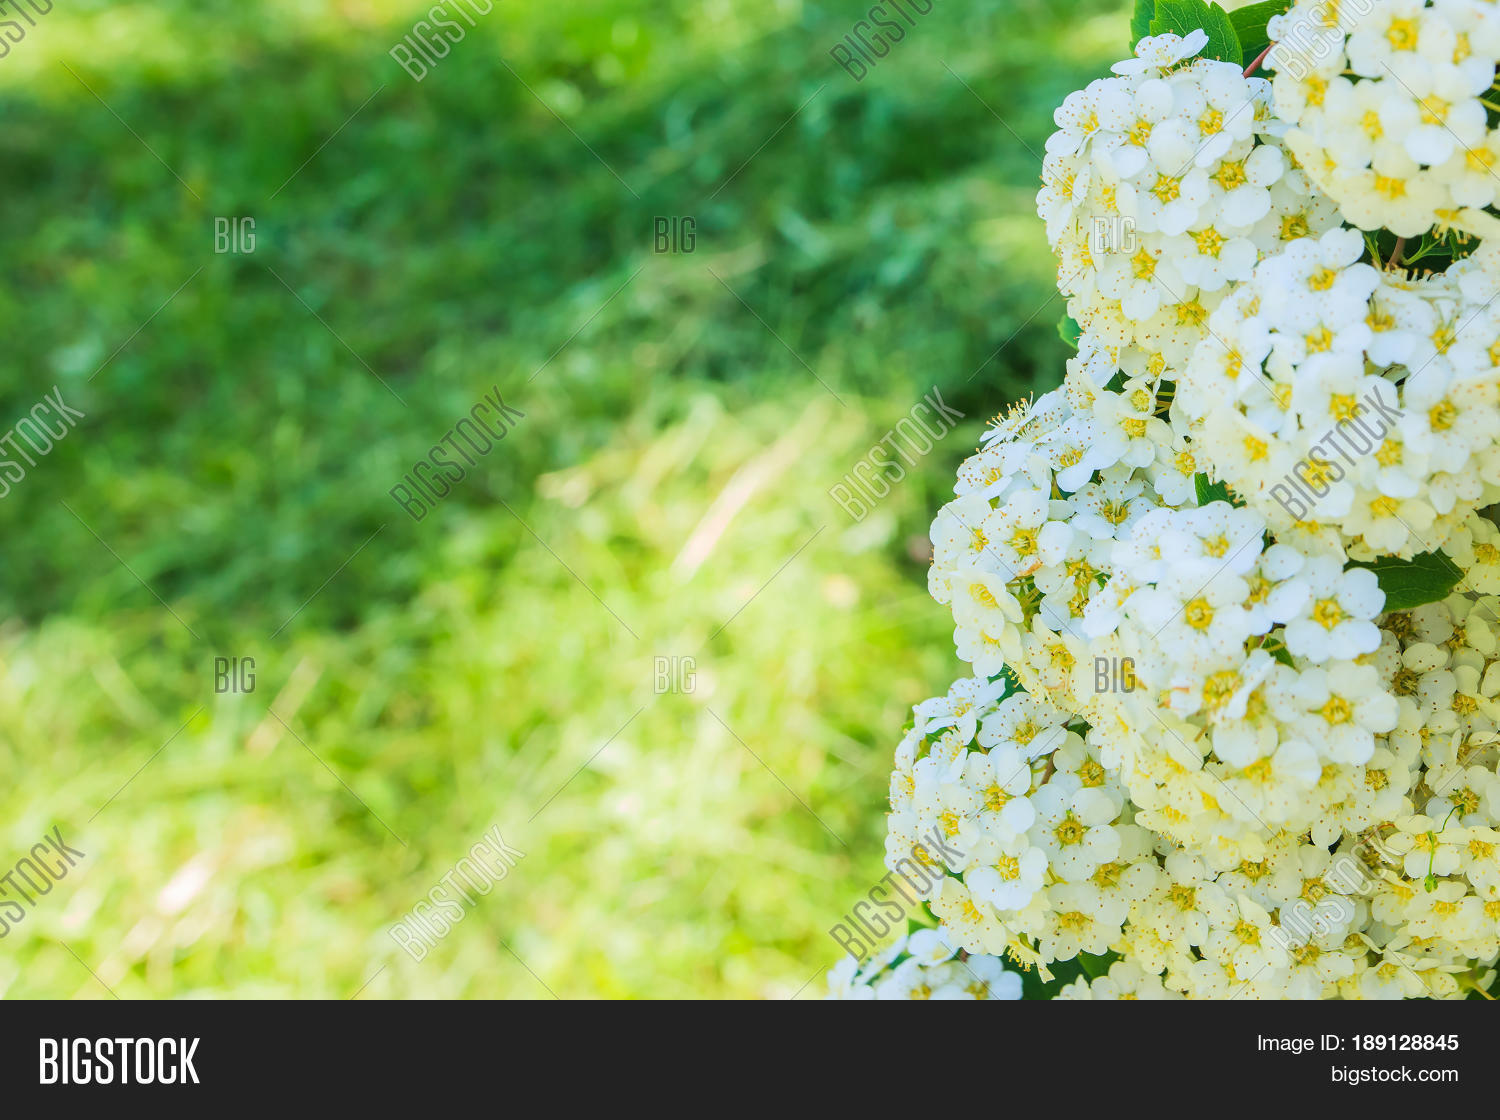 White Flowers On Grass Image Photo Free Trial Bigstock